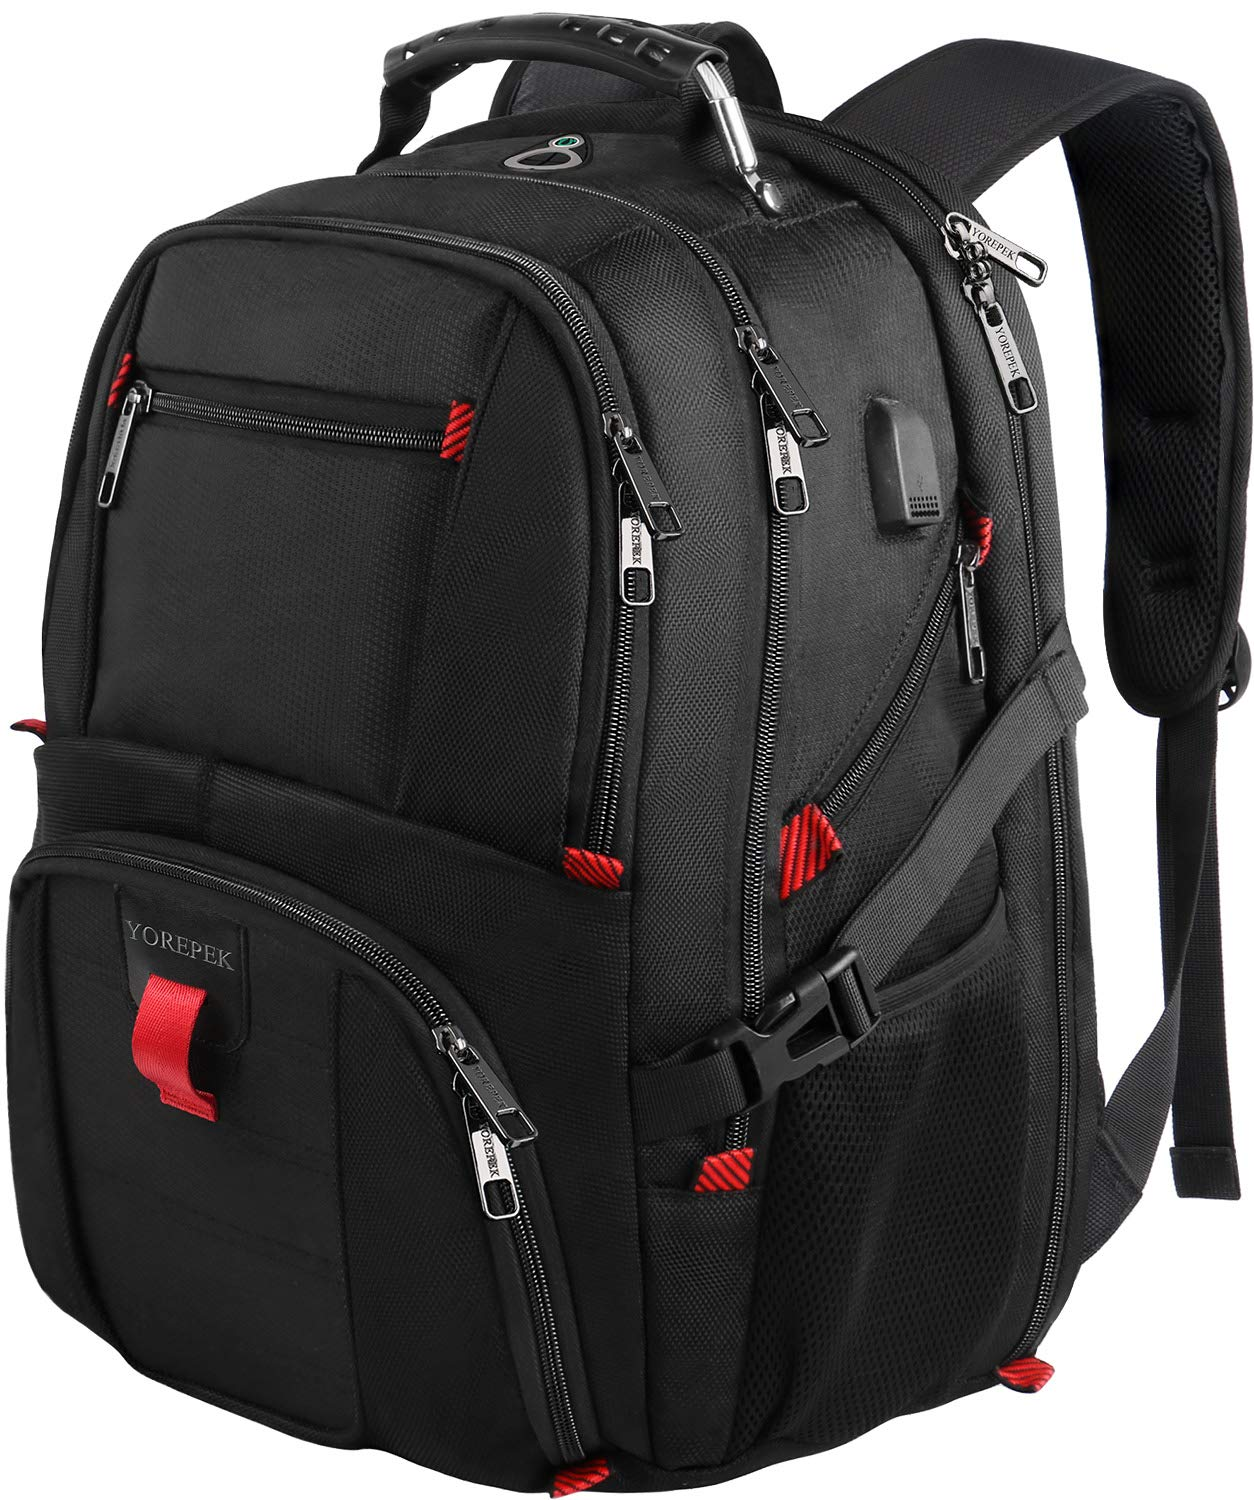 YOREPEK 18.4 Laptop Backpack,Large Computer Backpacks Fit Most 18 Inch Laptop with USB Charger Port,TSA Friendly Flight Approved Weekend Carry on Backpack with Luggage Strap for Men and Women-Black by YOREPEK